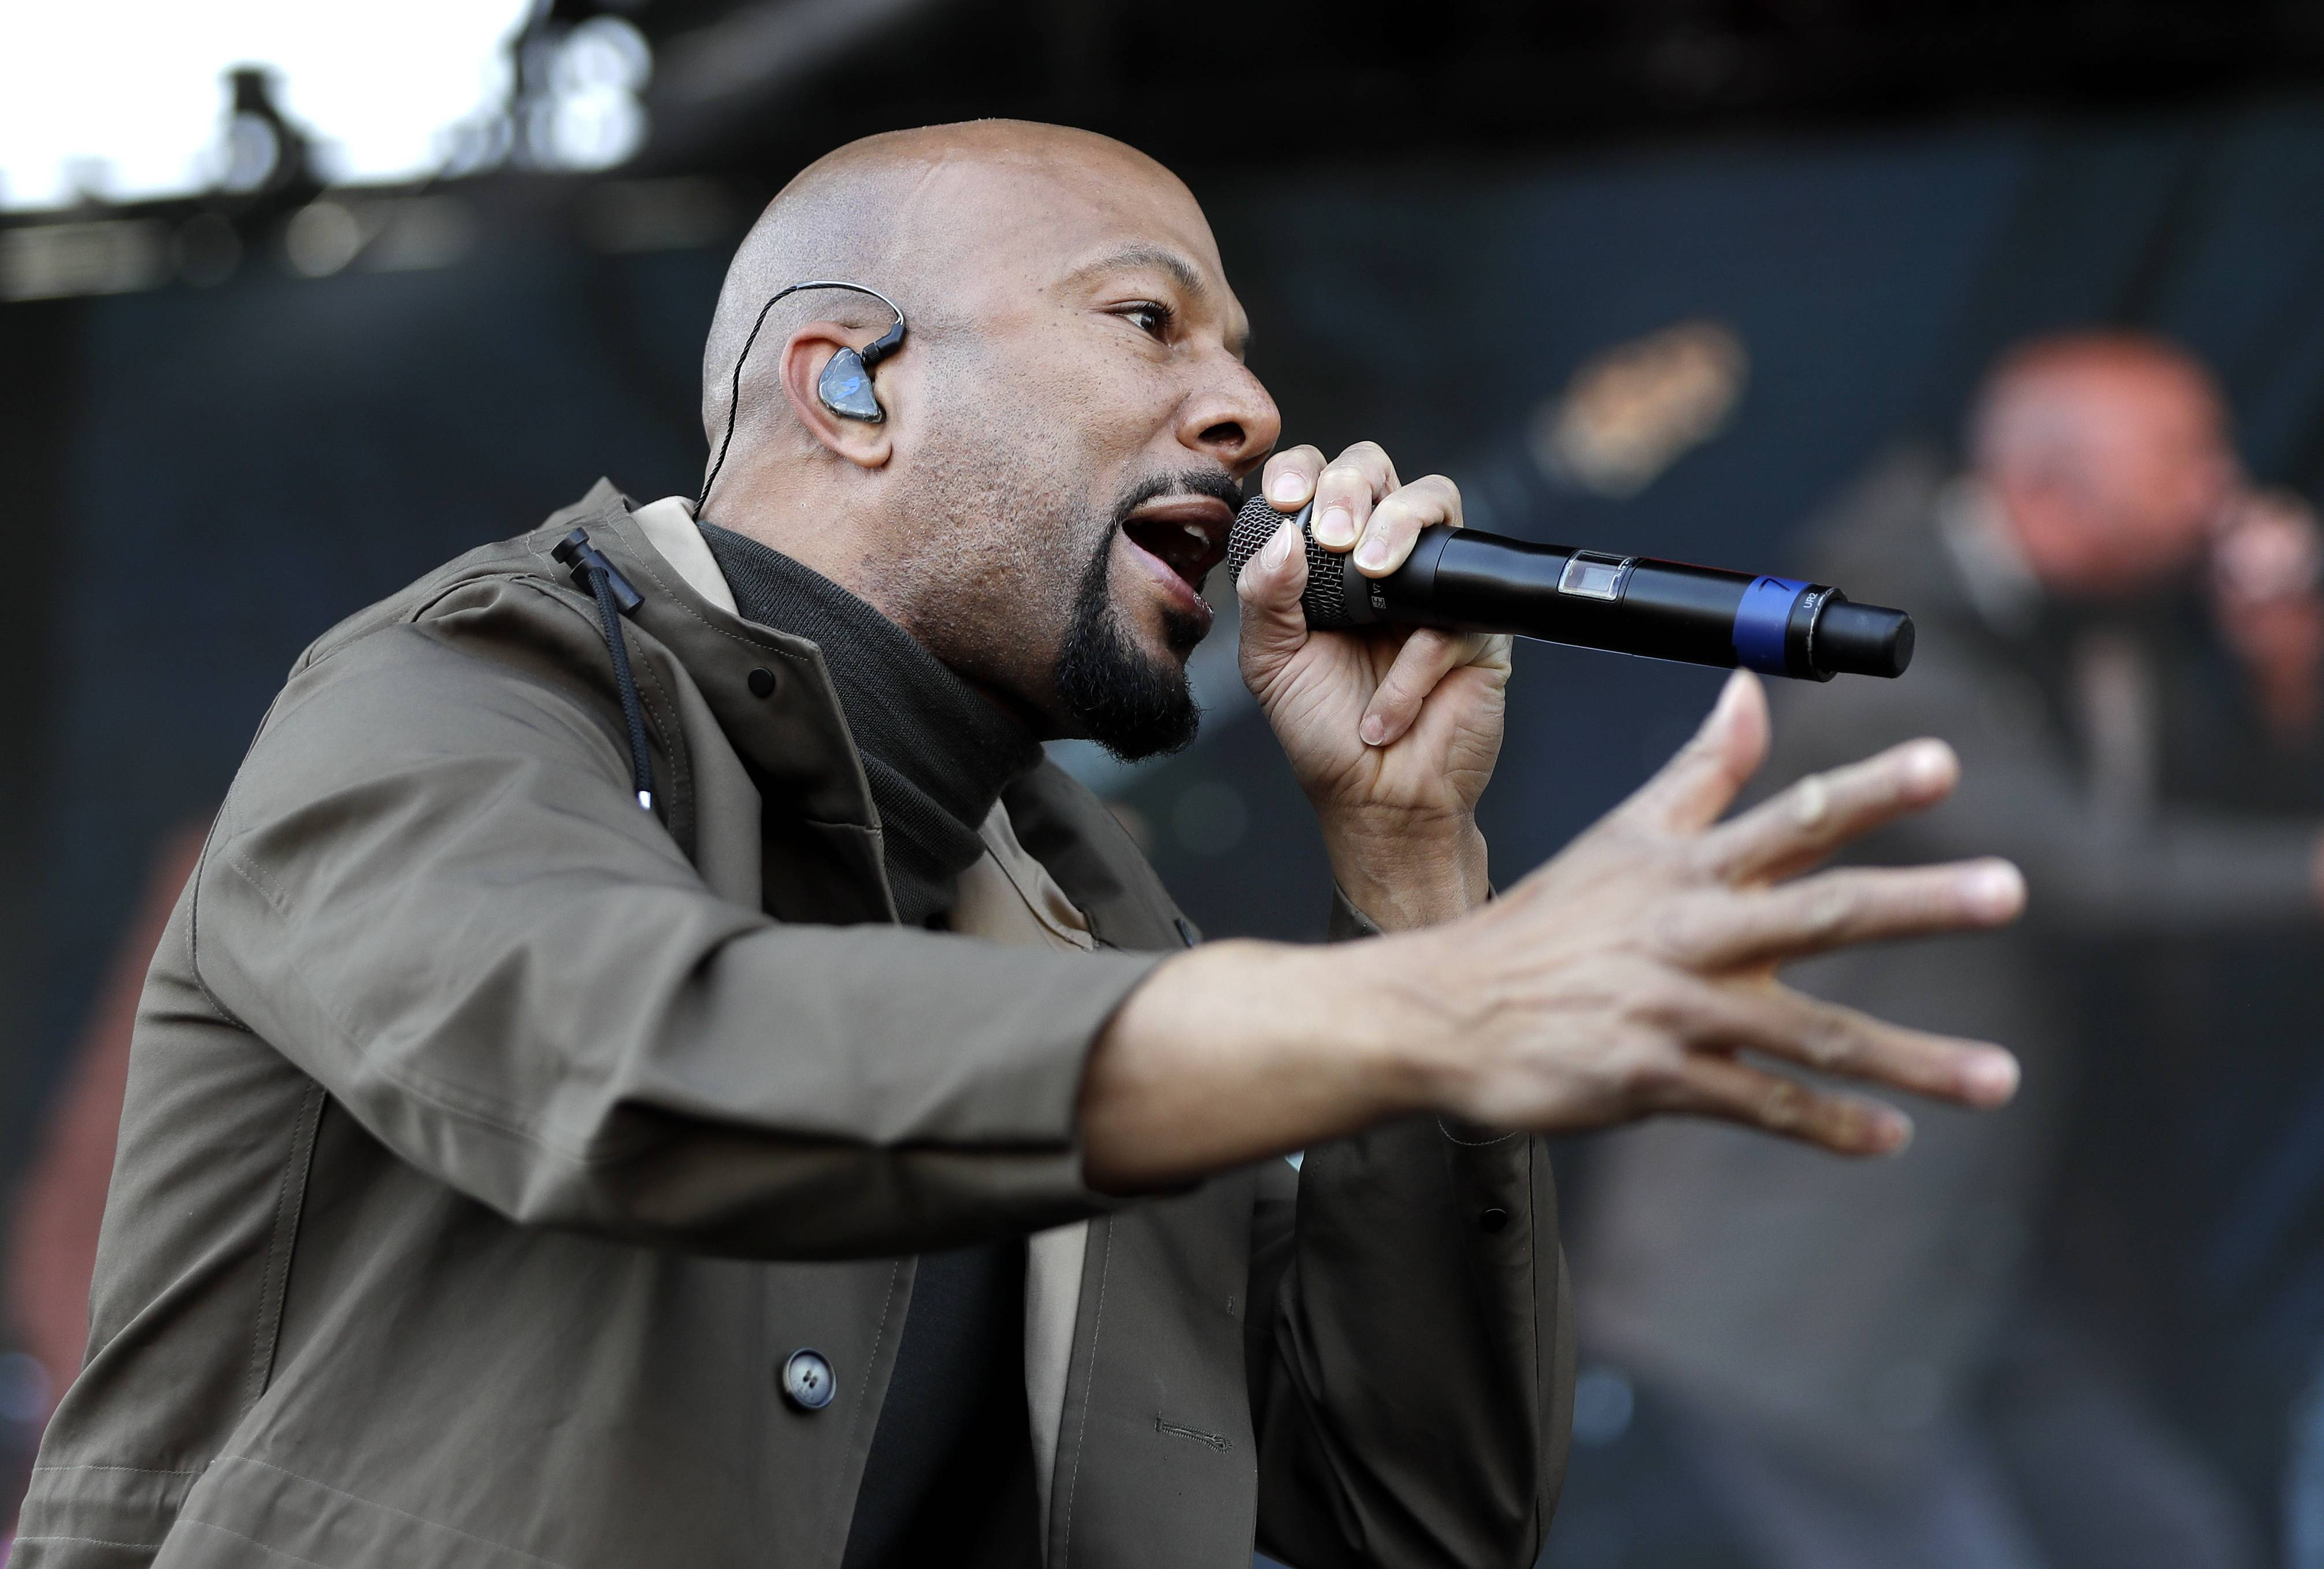 Rapper Common is one of the headliners of Mamby on the Beach, the two-day music festival at Oakwood Beach Saturday and Sunday, June 23-24.